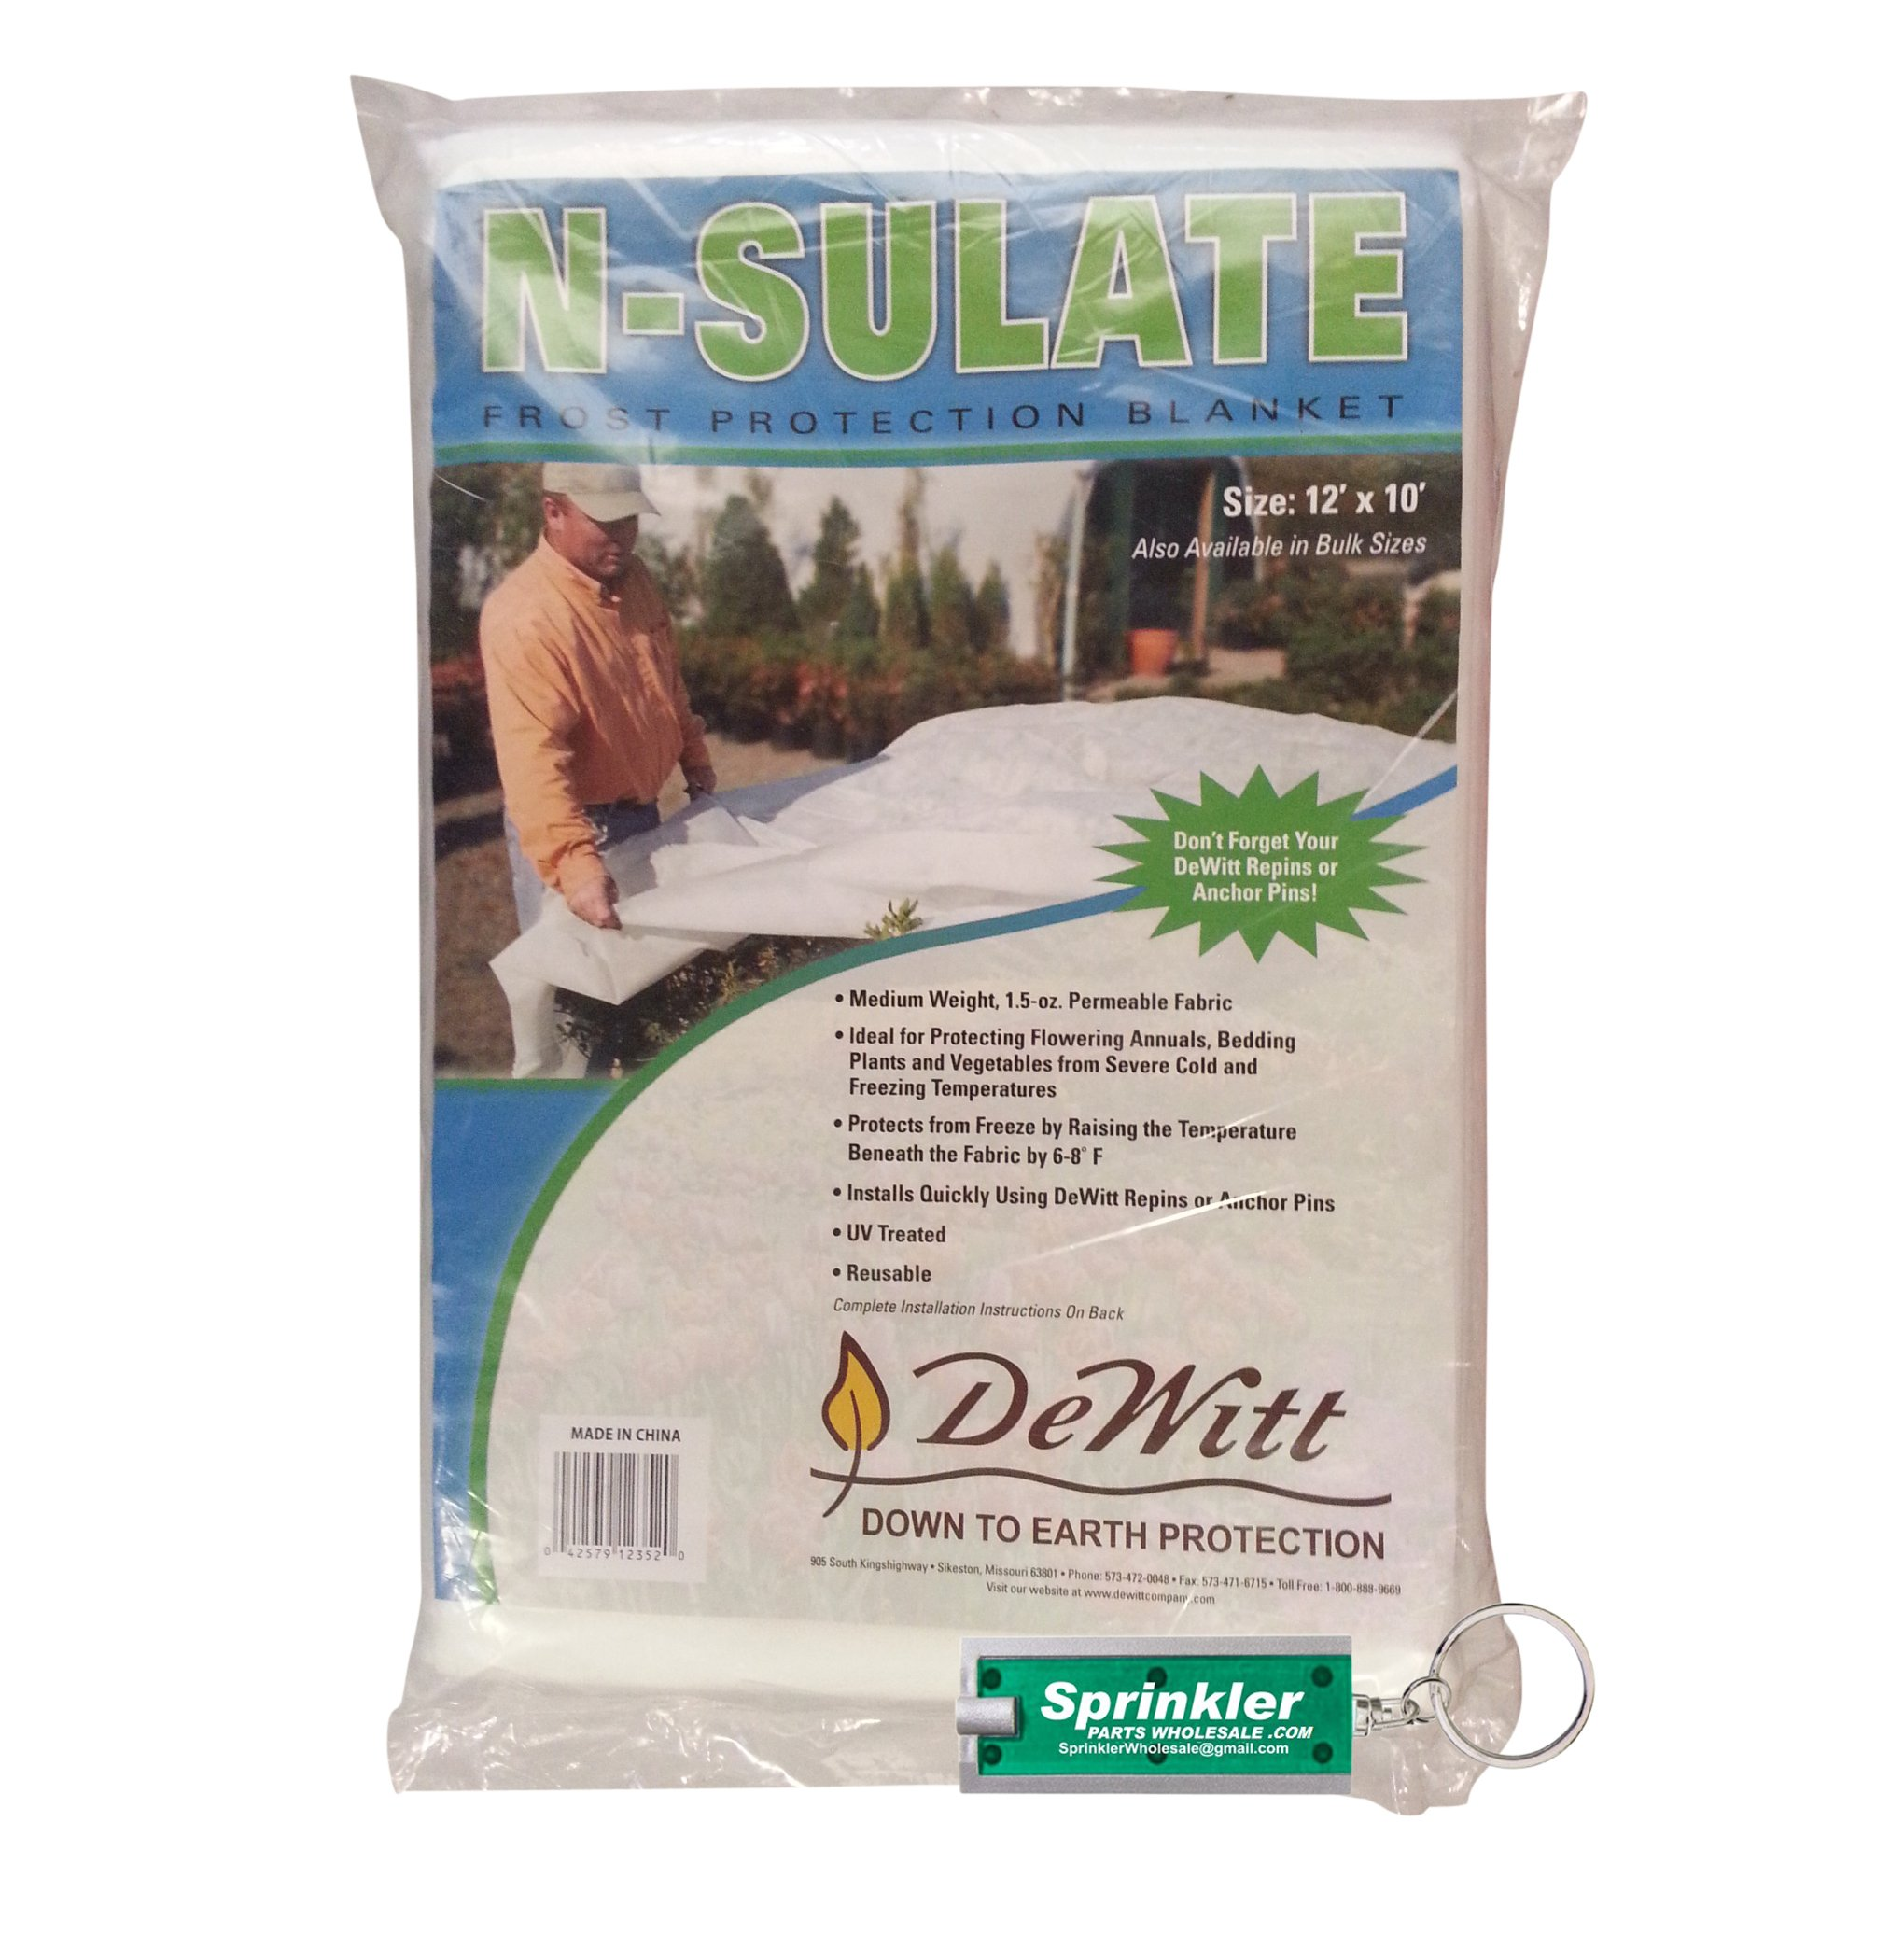 DeWitt NS12 Fabric N Sulate Plant Protection, 10-Feet, 1.5- Ounce DeWitt NSulate including a SprinklerPartsWholesale Flashlight Keychain with every order! (7)